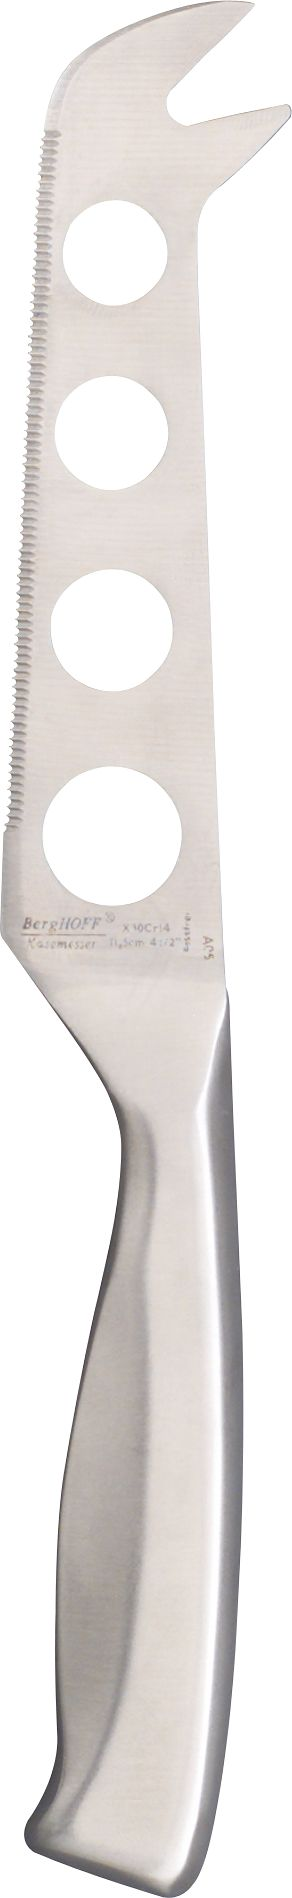 Specialty blade for the gourmet cheese course. Holes in the narrow blade keep soft cheese like Brie from sticking. Handle is hand-molded for balance and control; blade is hand-sharpened.<br /><br /><NEWTAG/><ul><li>Surgical stainless steel</li><li>Hand-molded and hand-sharpened</li><li>Hand wash</li></ul>